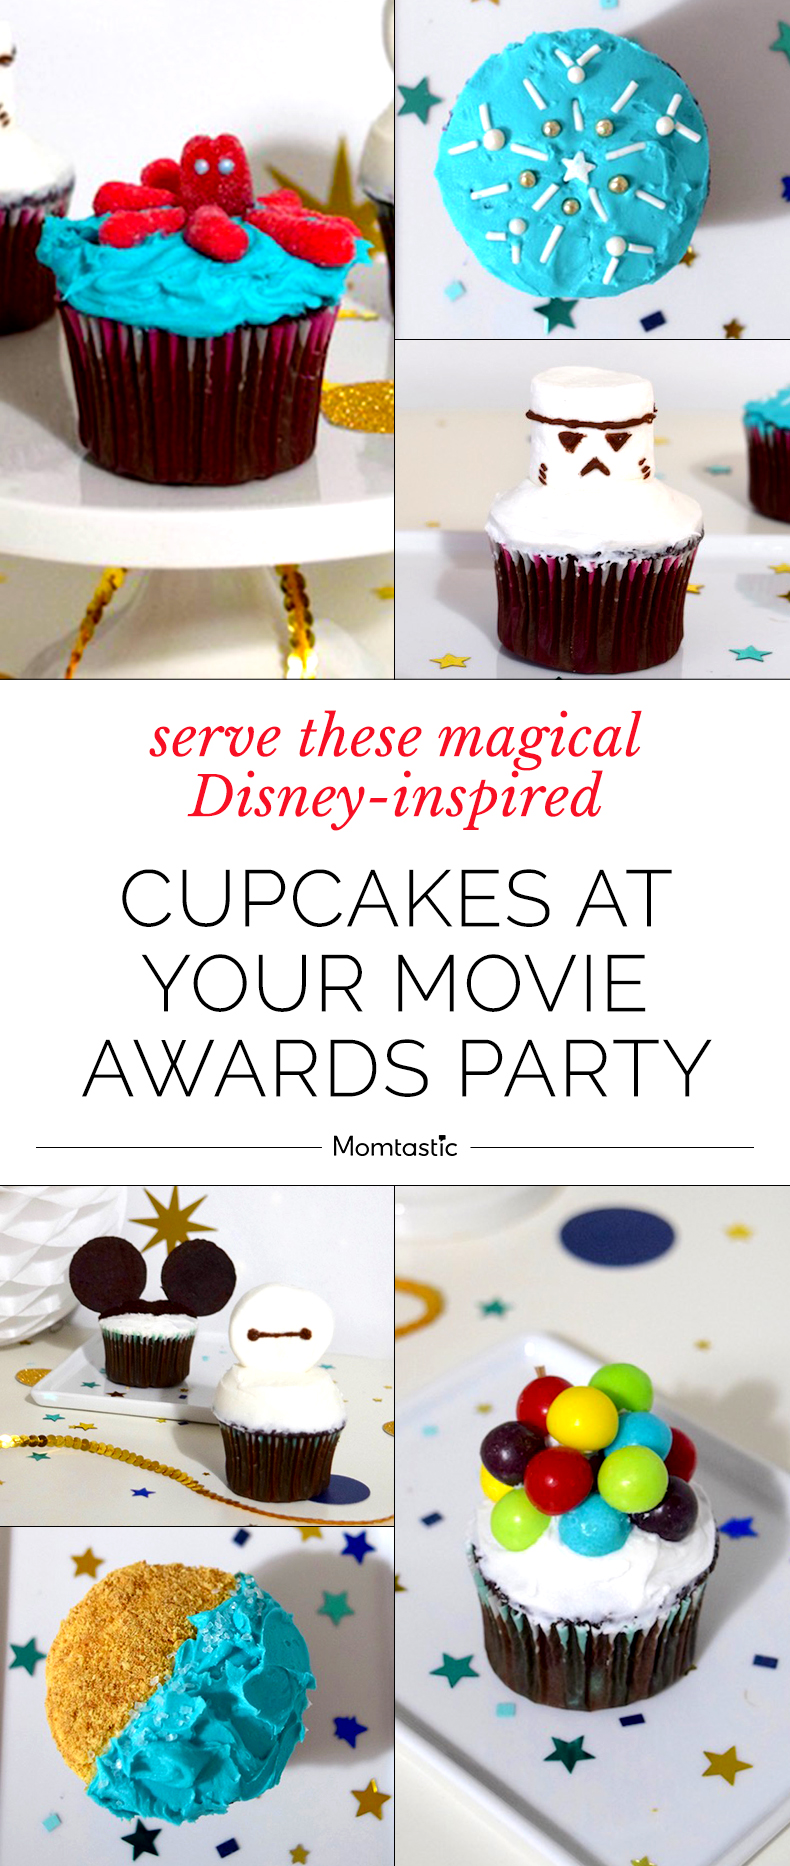 mt_pinterest_pins_disney_oscars_parties_04_r02